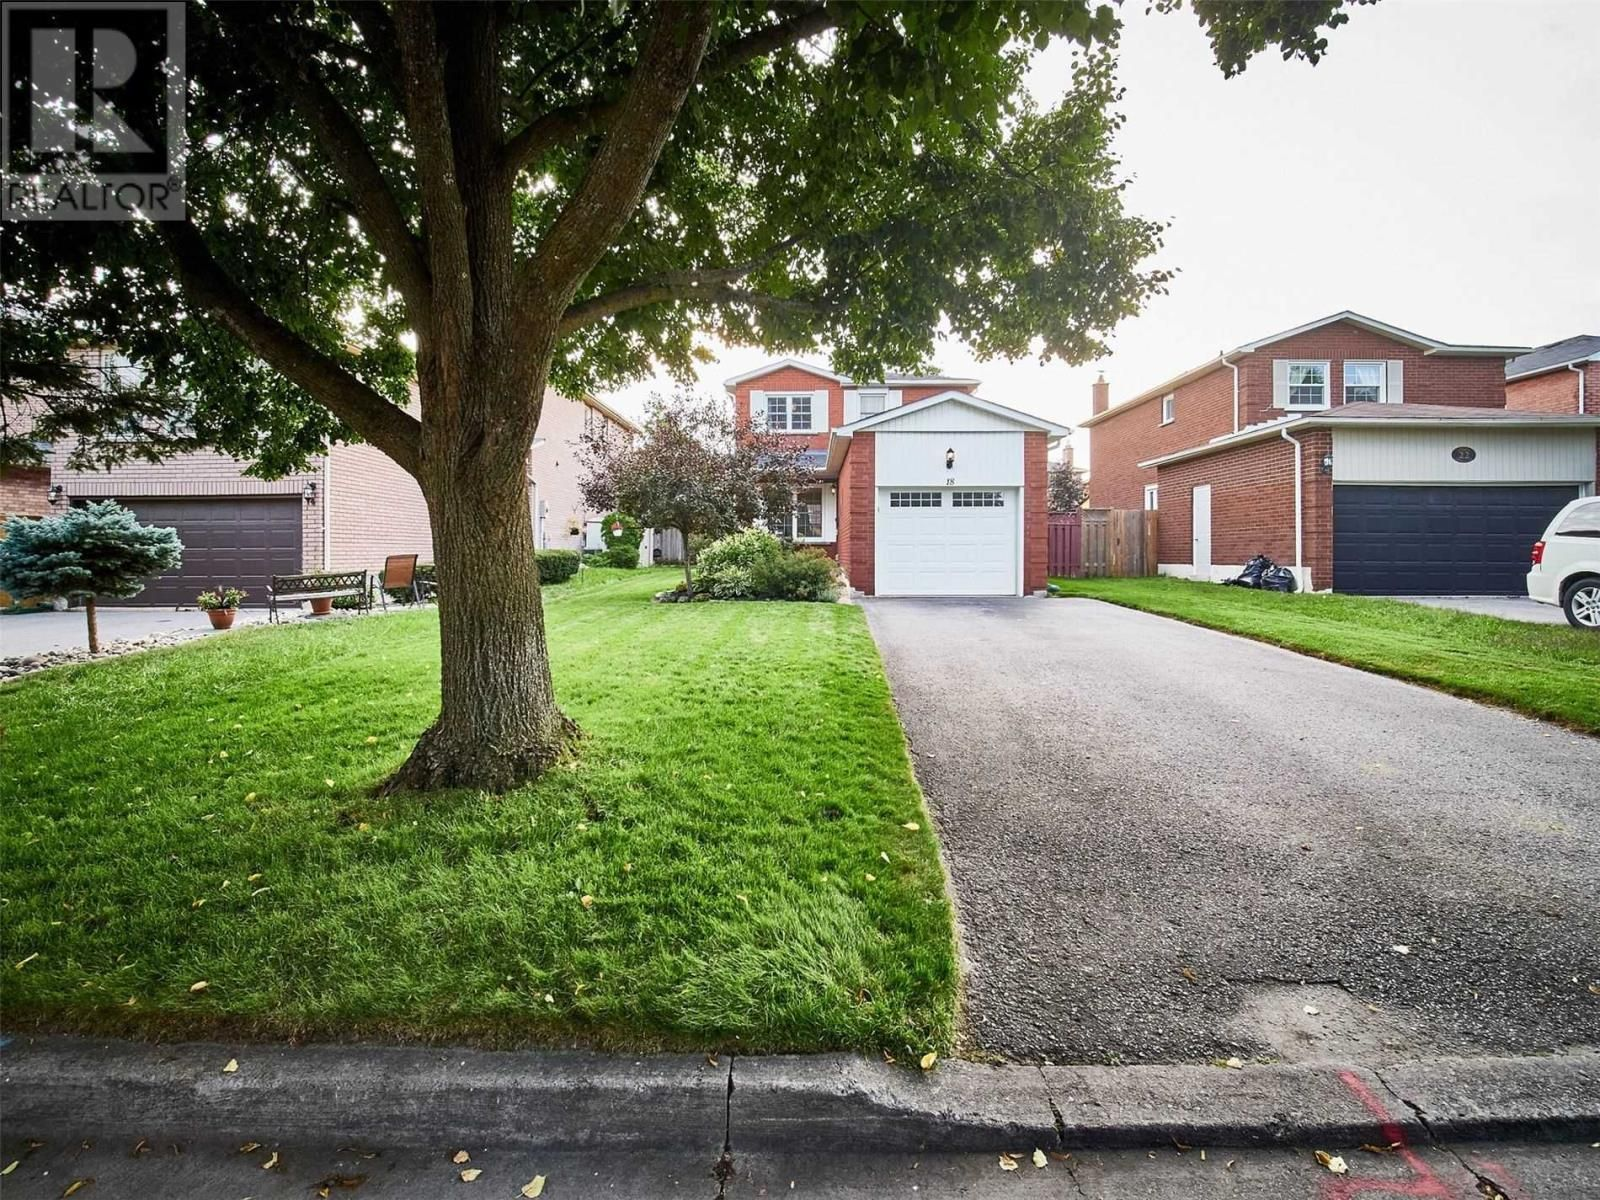 Main Photo: 18 LINDEN LANE in Whitchurch-Stouffville: House for sale : MLS®# N5400142